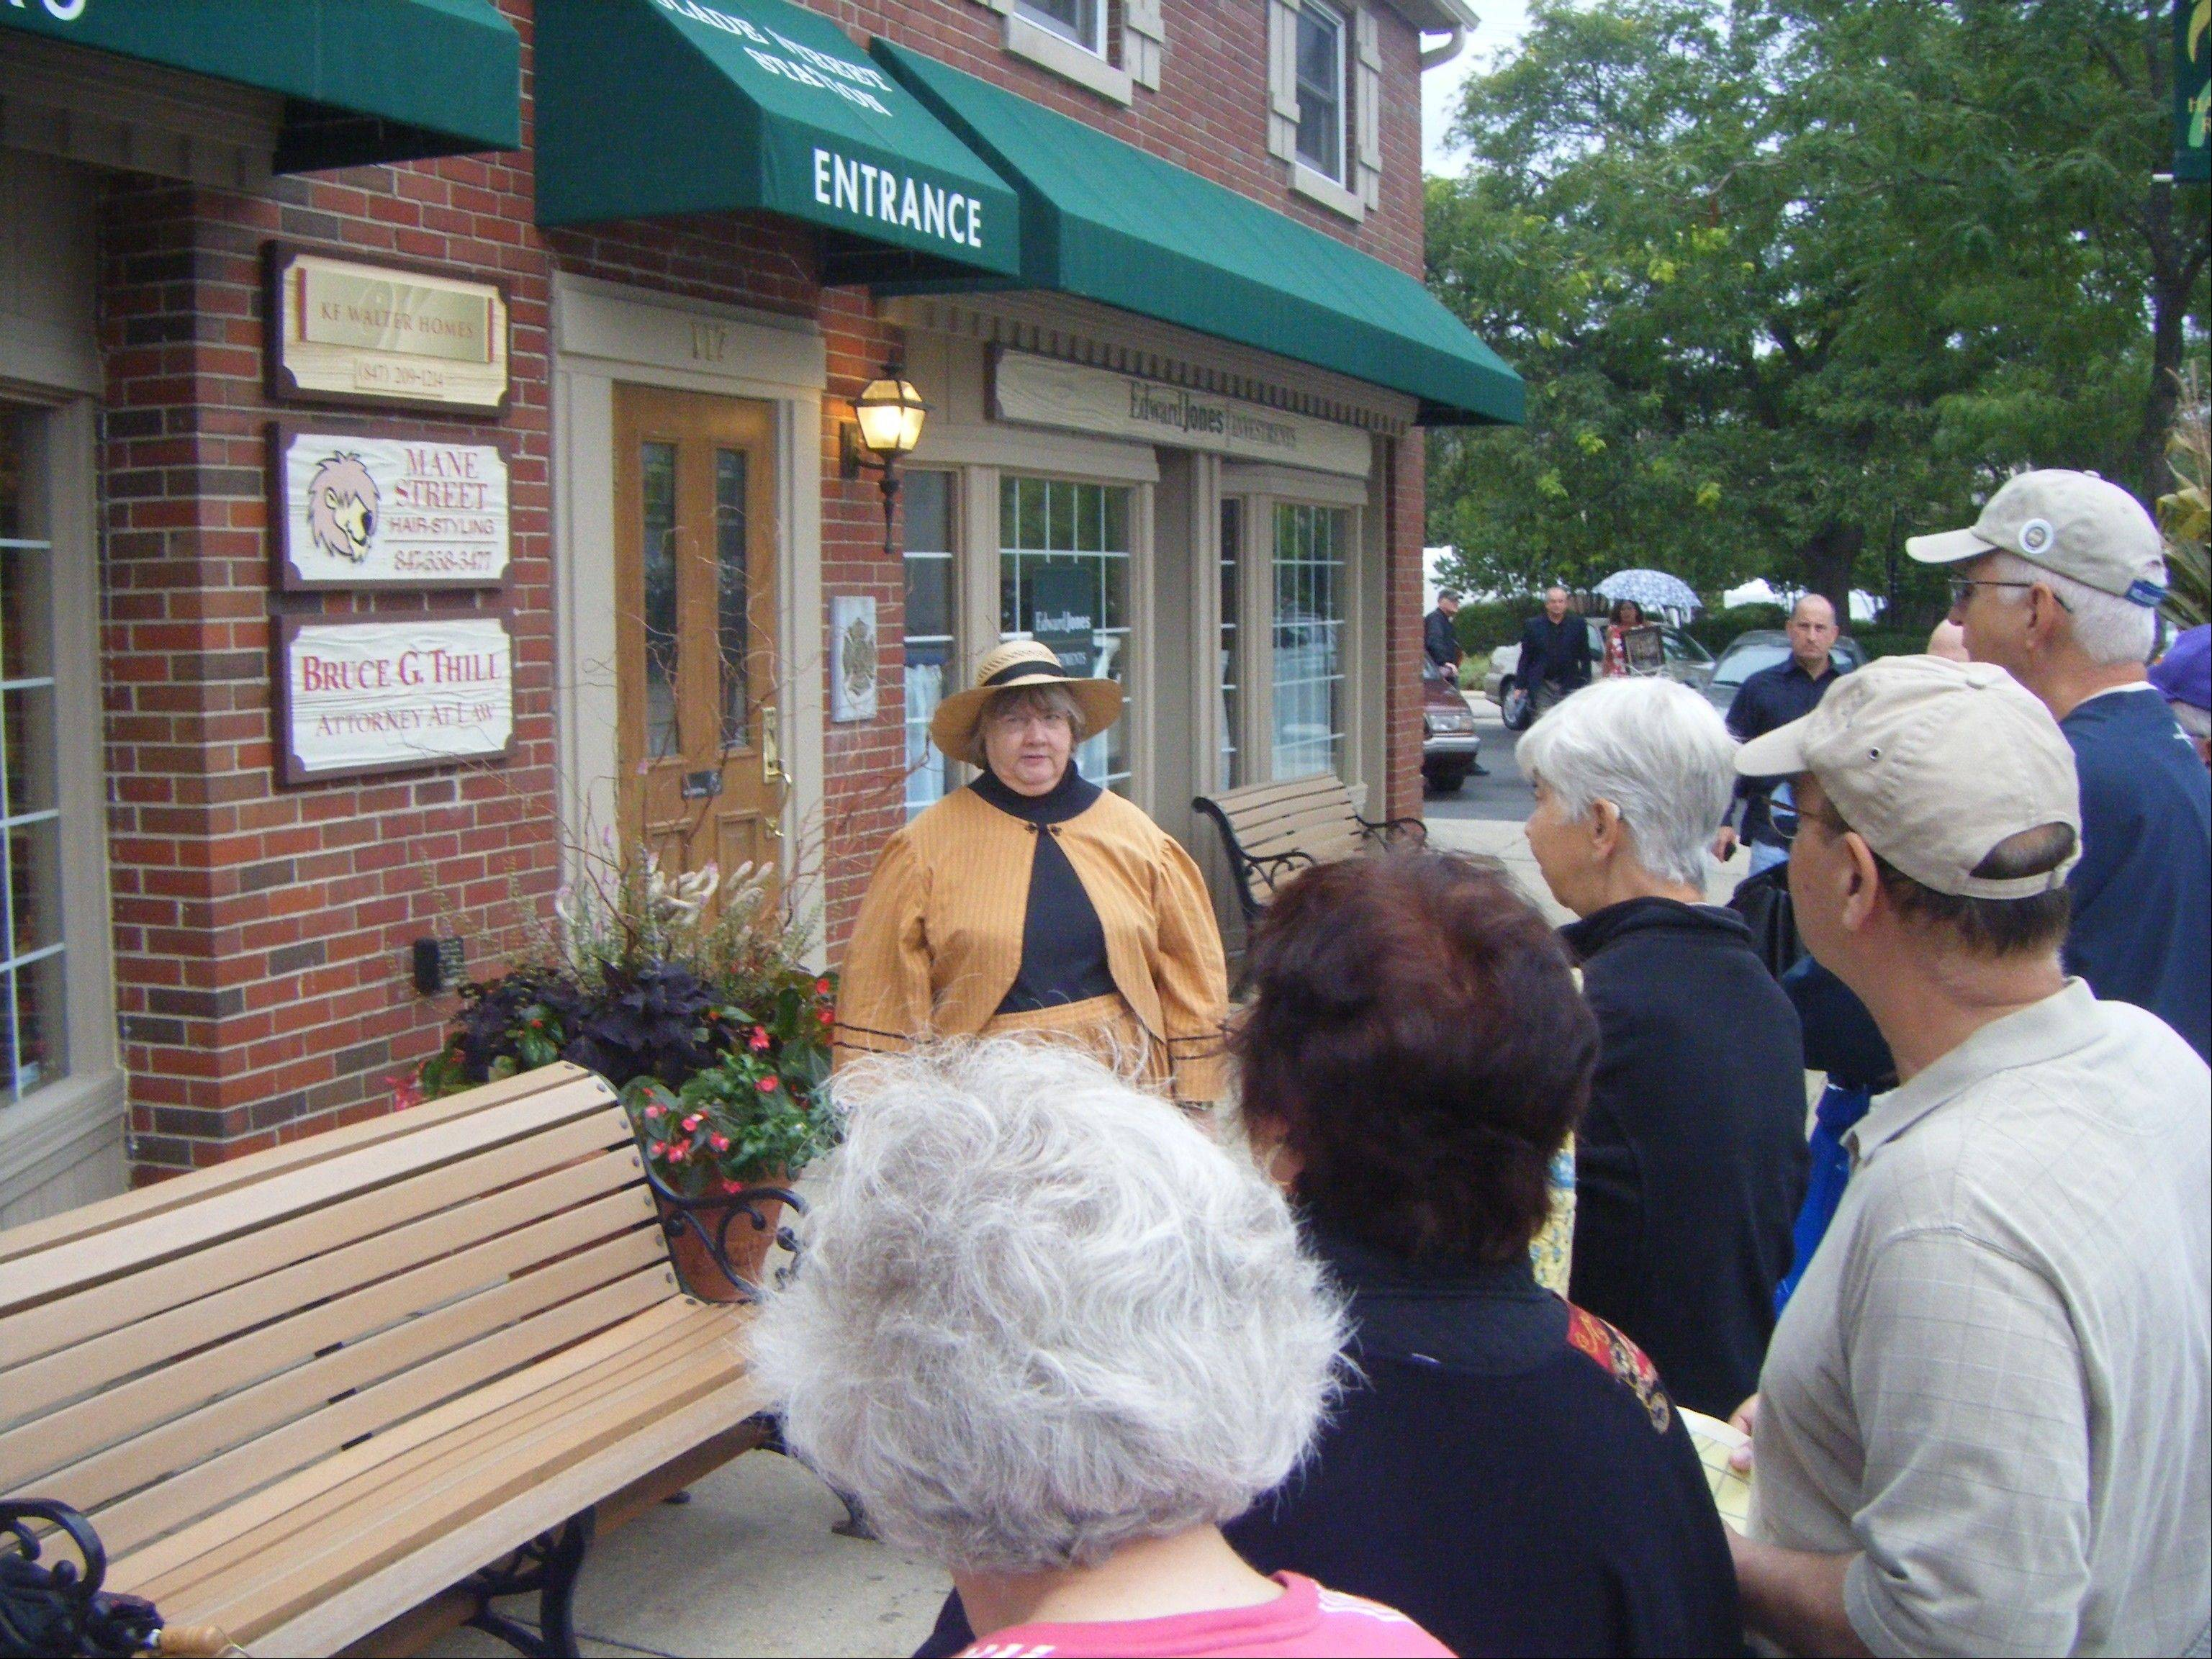 A costumed actor shares the history of Palatine at the first Palatine Historical Society's History Crawl. The second annual History Crawl is being held from 5:30-8:30 p.m. Friday, Sept. 7. For information, contact Marilyn Pedersen, (847) 991-6460 or mpedersen@palatineparks.org.